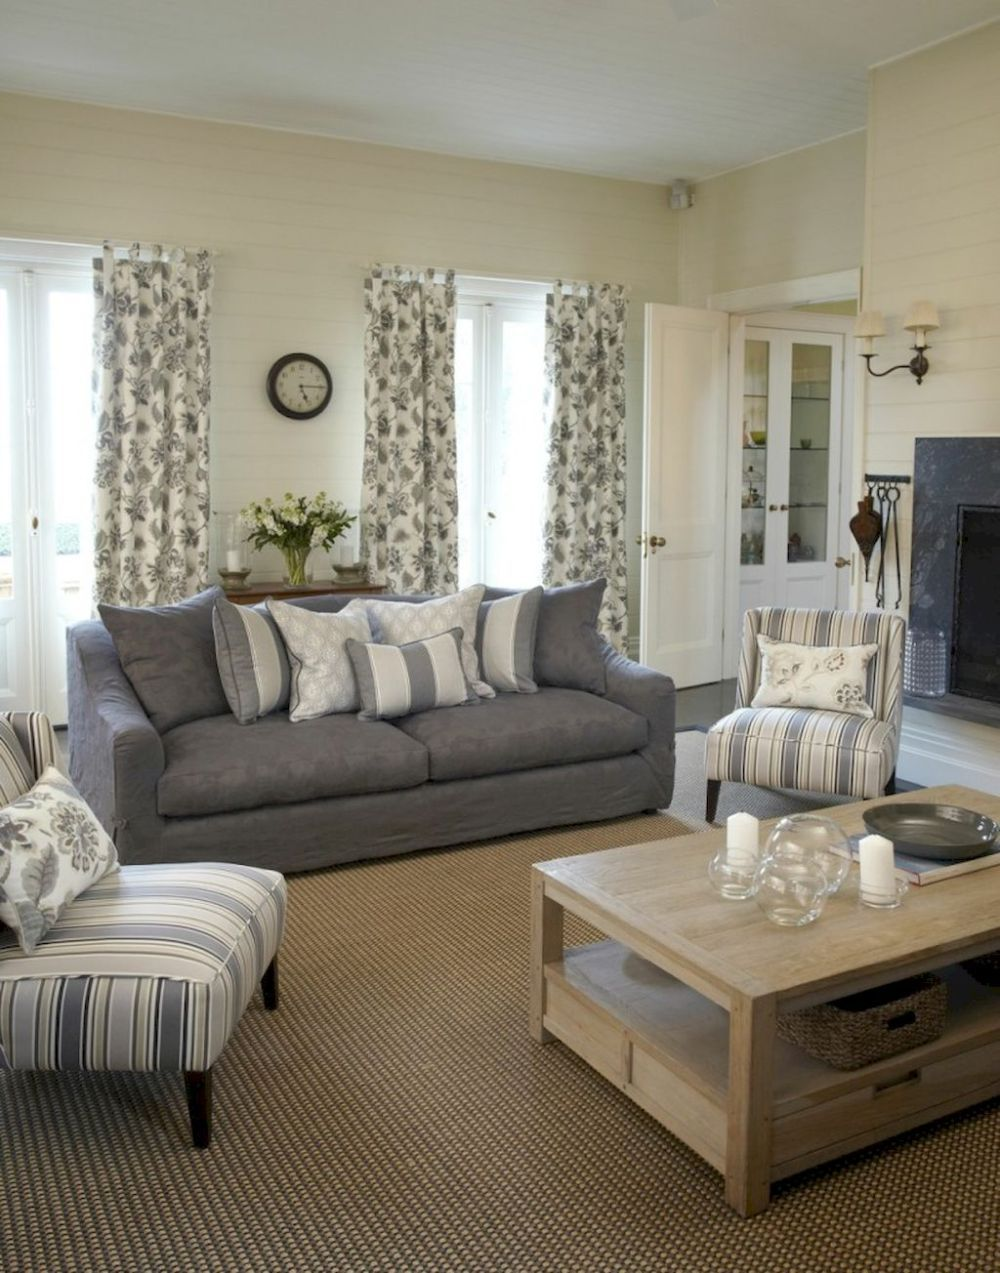 Gorgeous French Country Living Room Decor Ideas 6 French